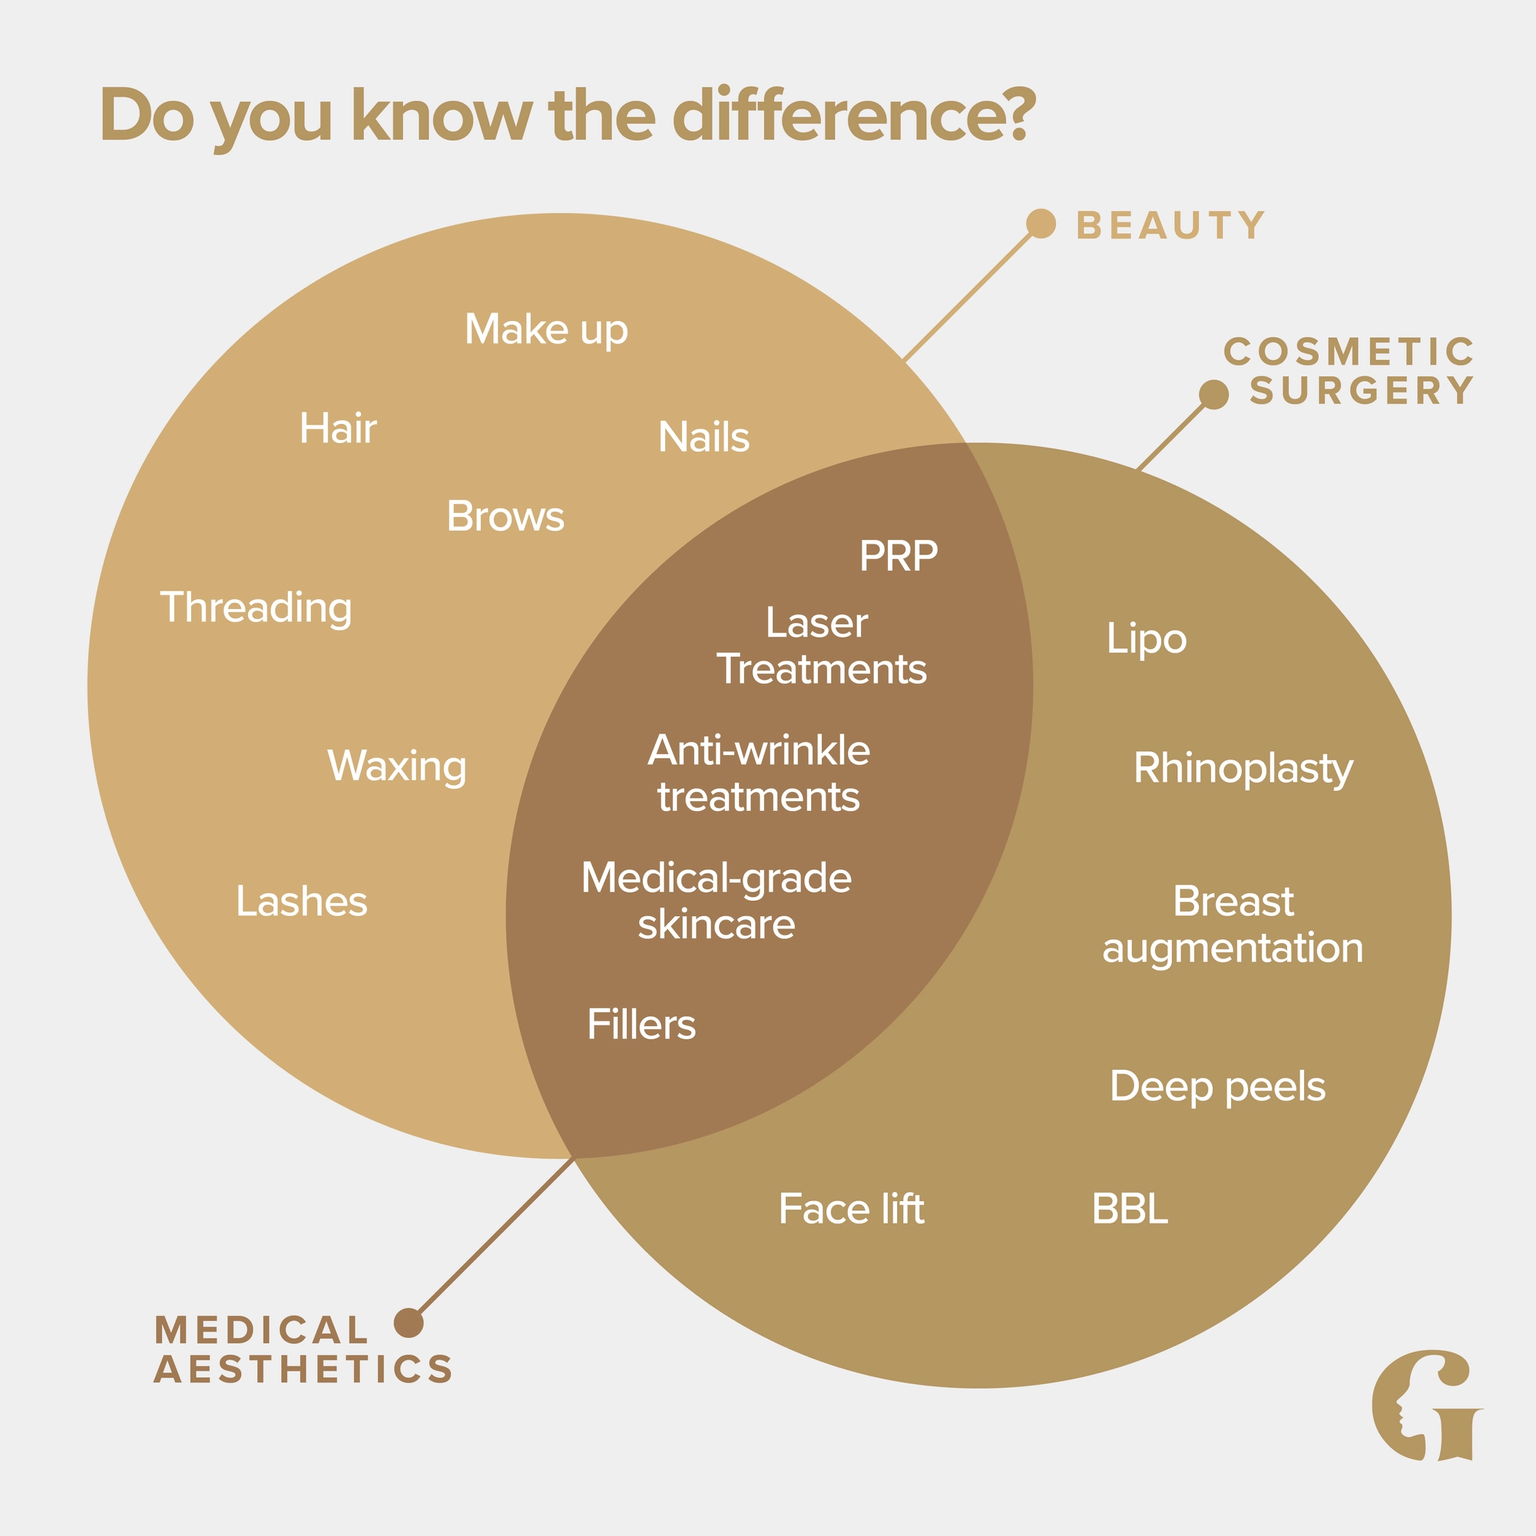 Venn diagram showing where medical aesthetics fits between beauty and cosmetic surgery